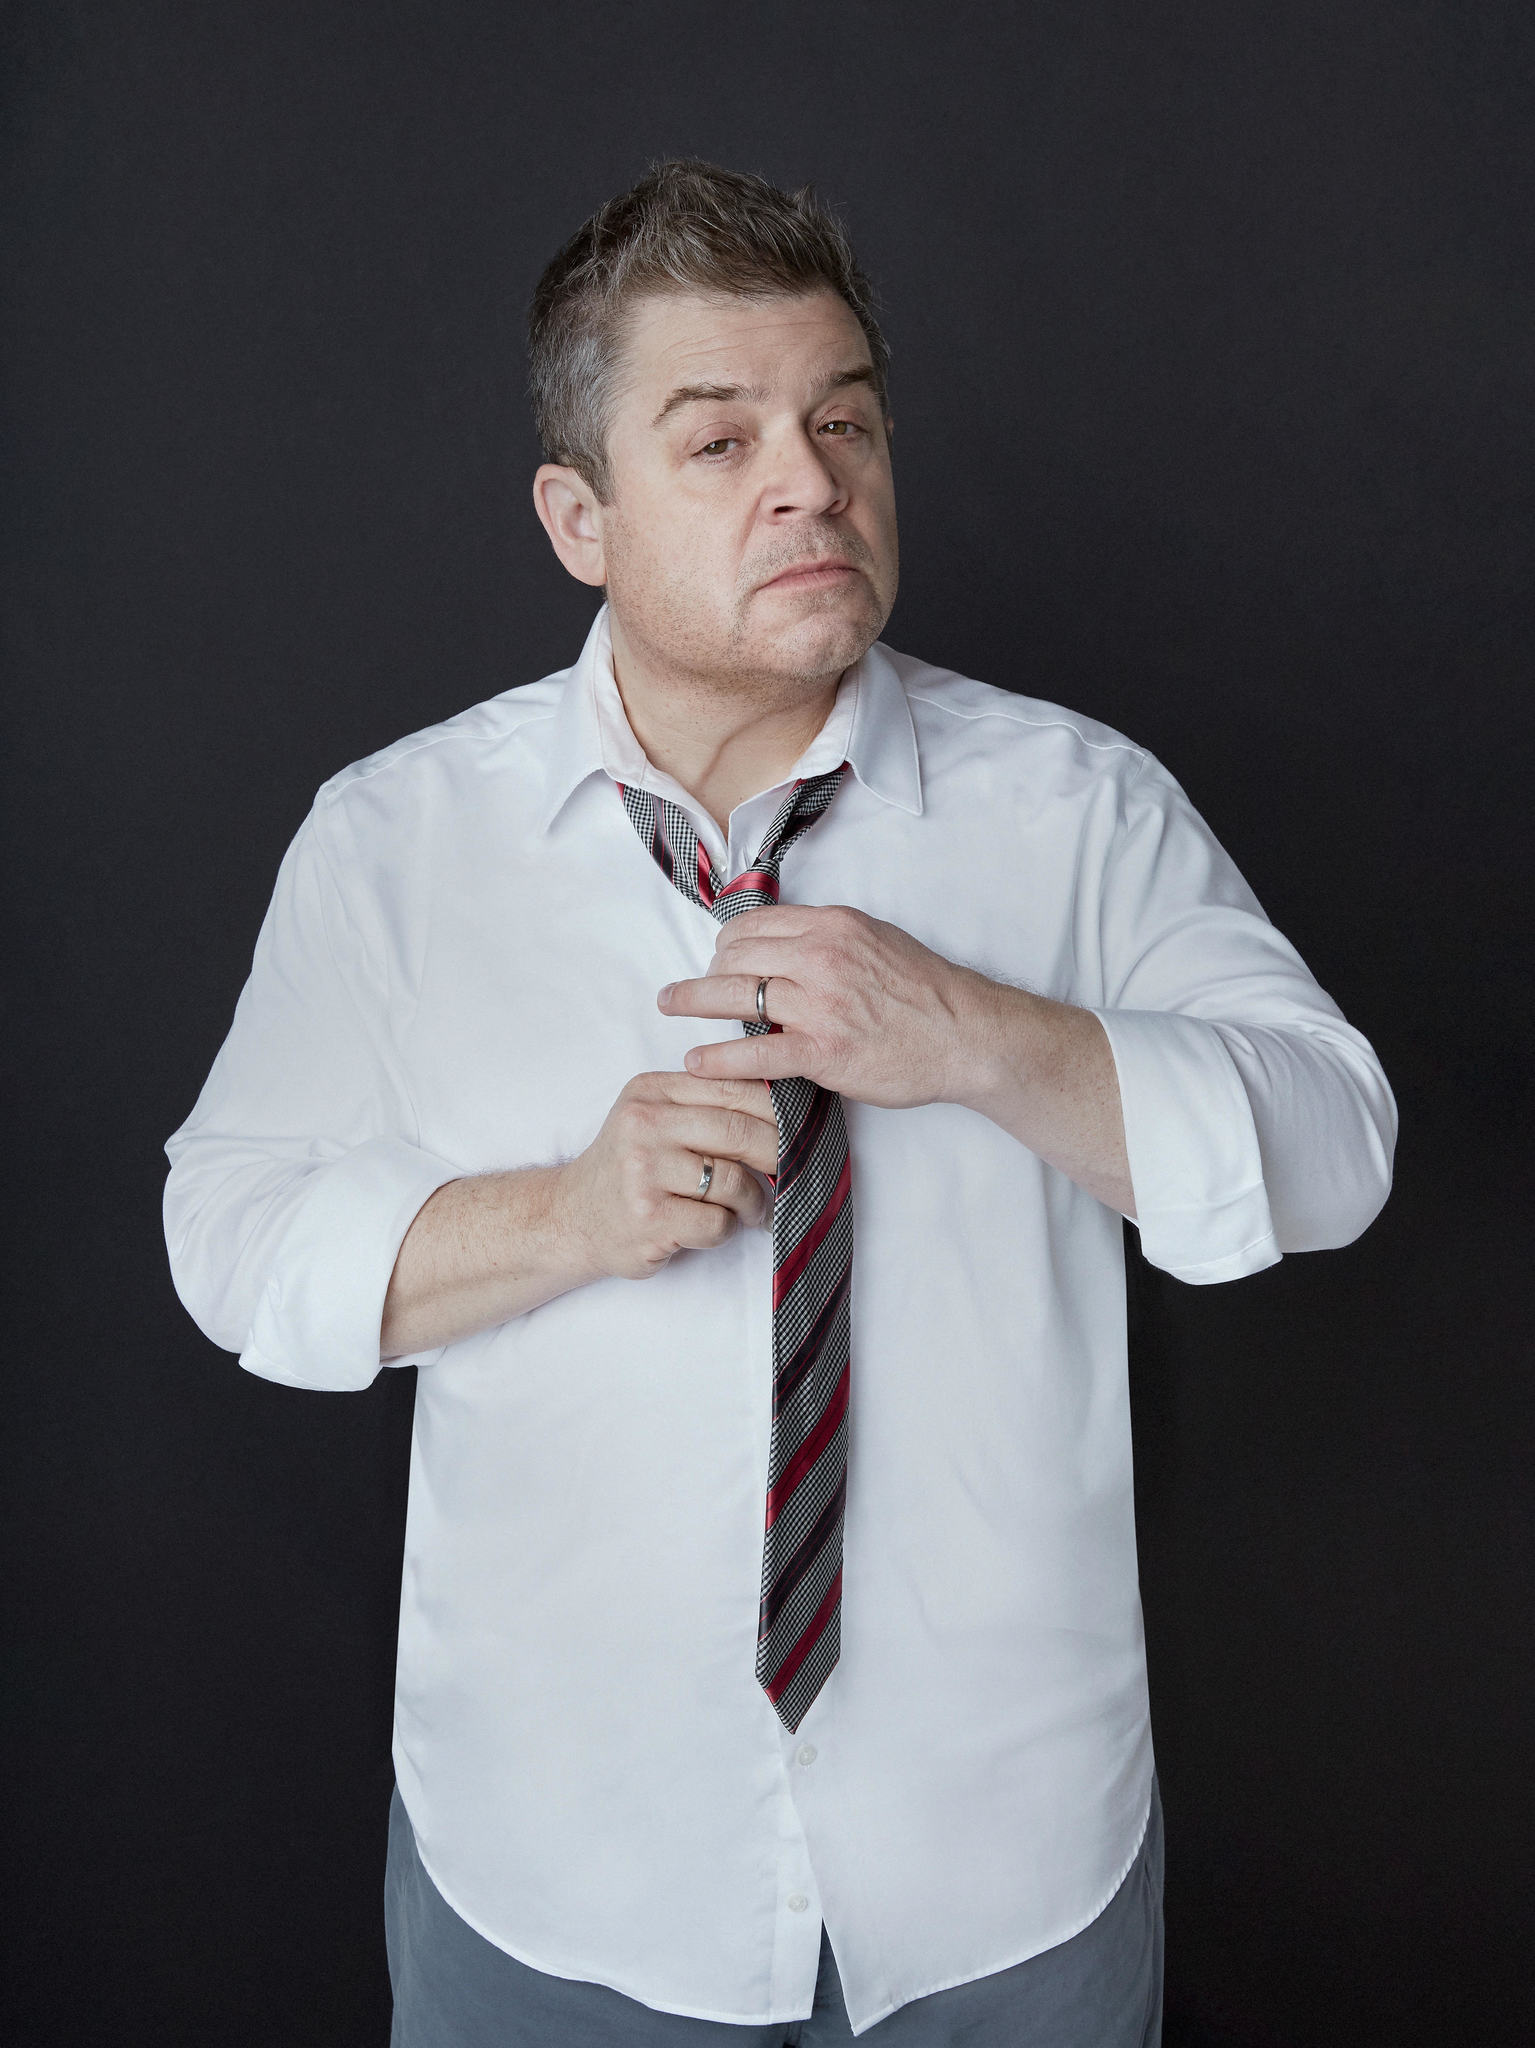 sports shoes 863f1 0640c Patton Oswalt - IMDb